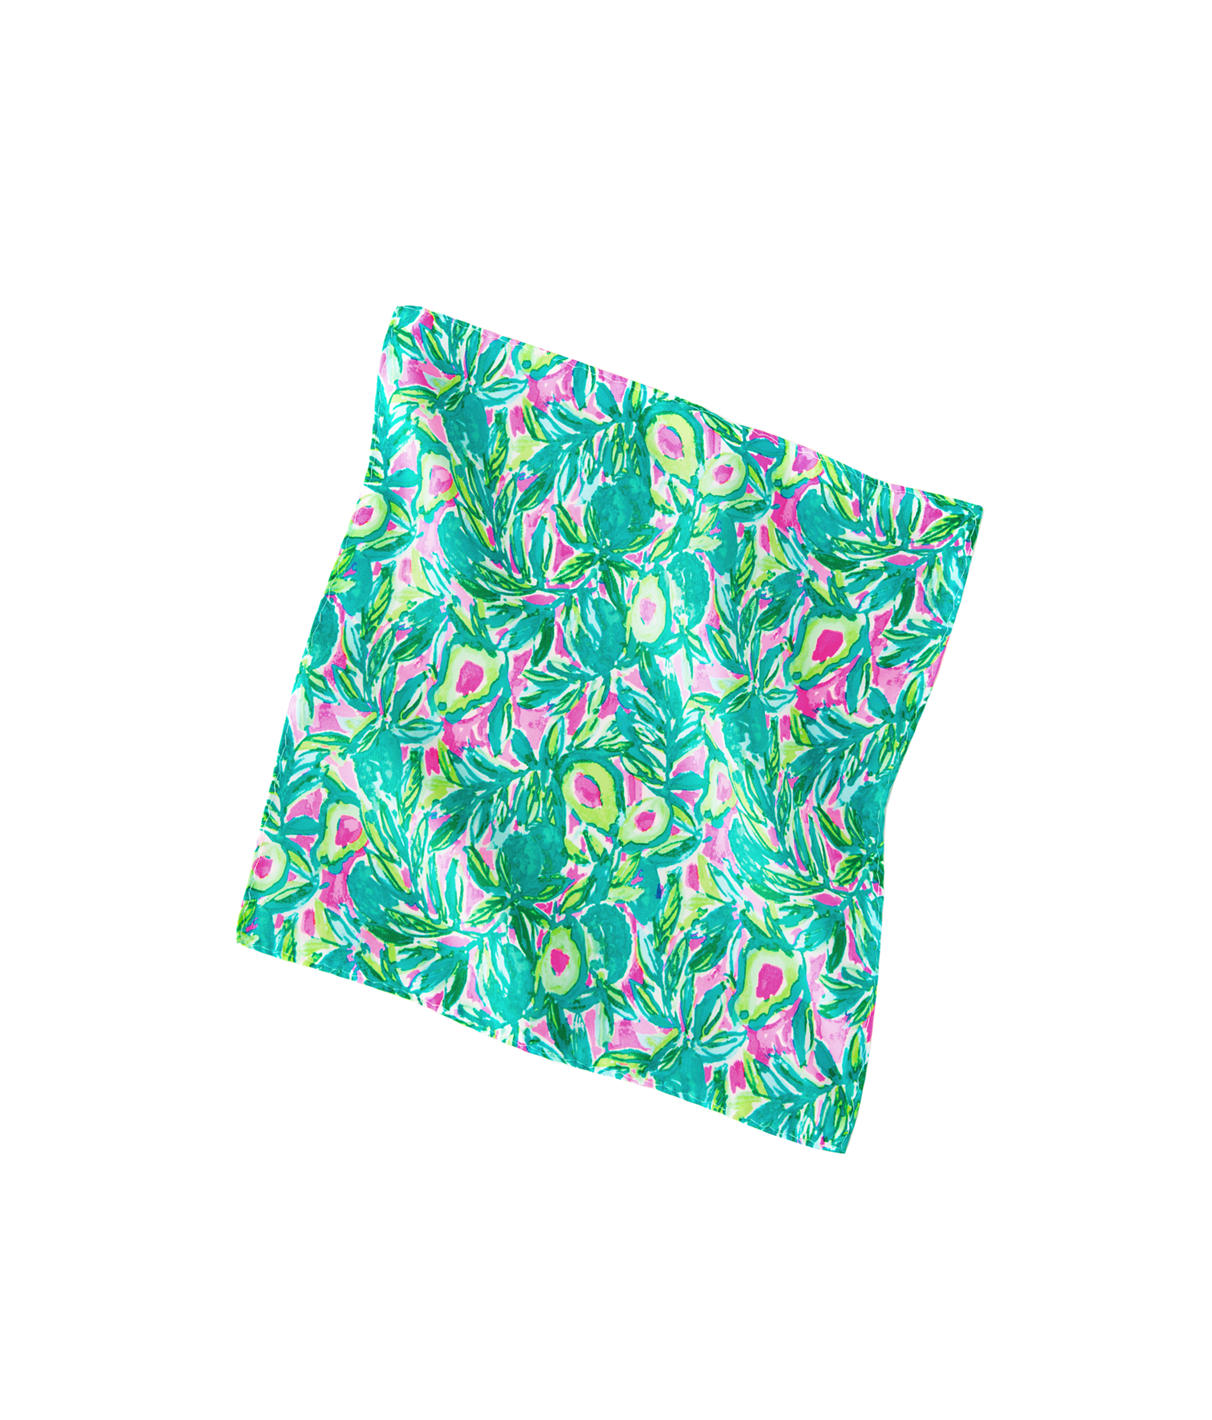 Lilly Pulitzer Lilly Pulitzer Mens Pocket Square